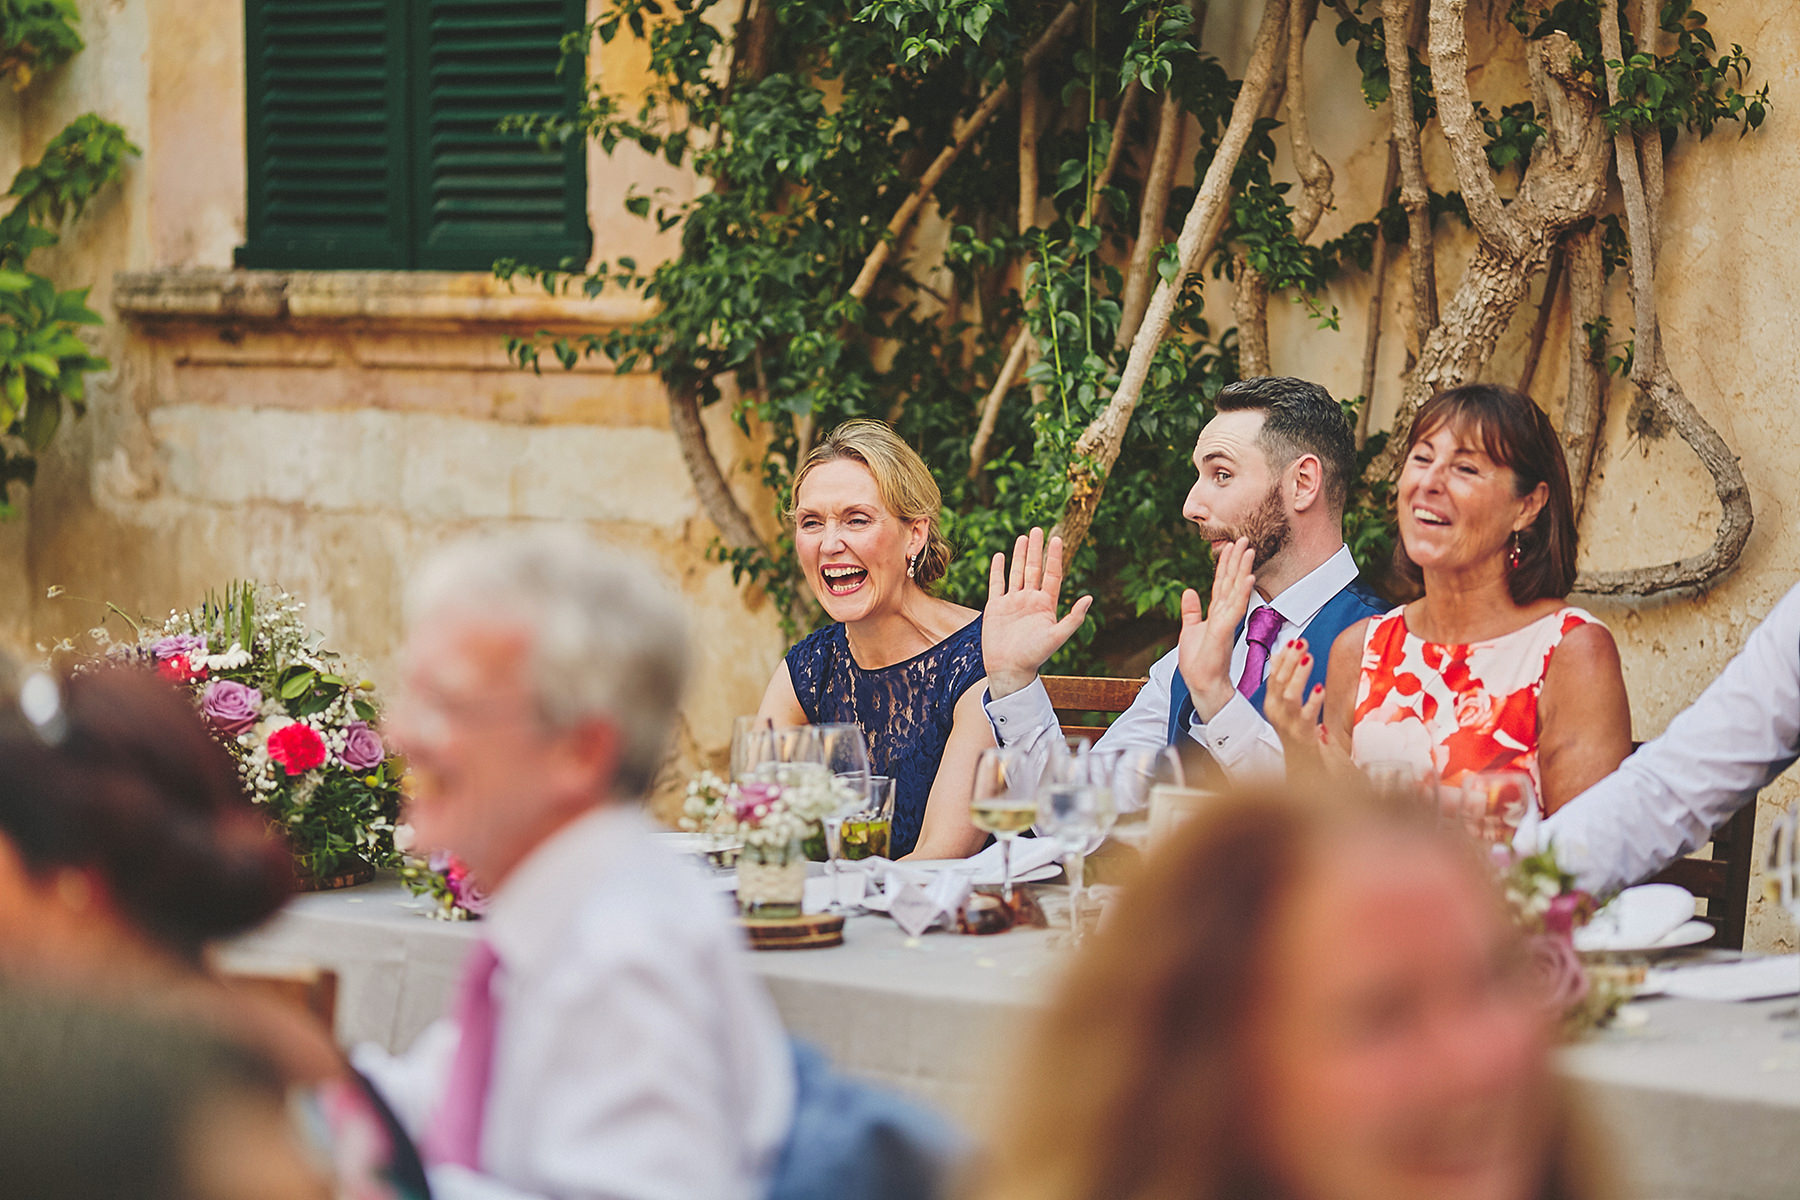 350 - Destination wedding in a magical Mallorca